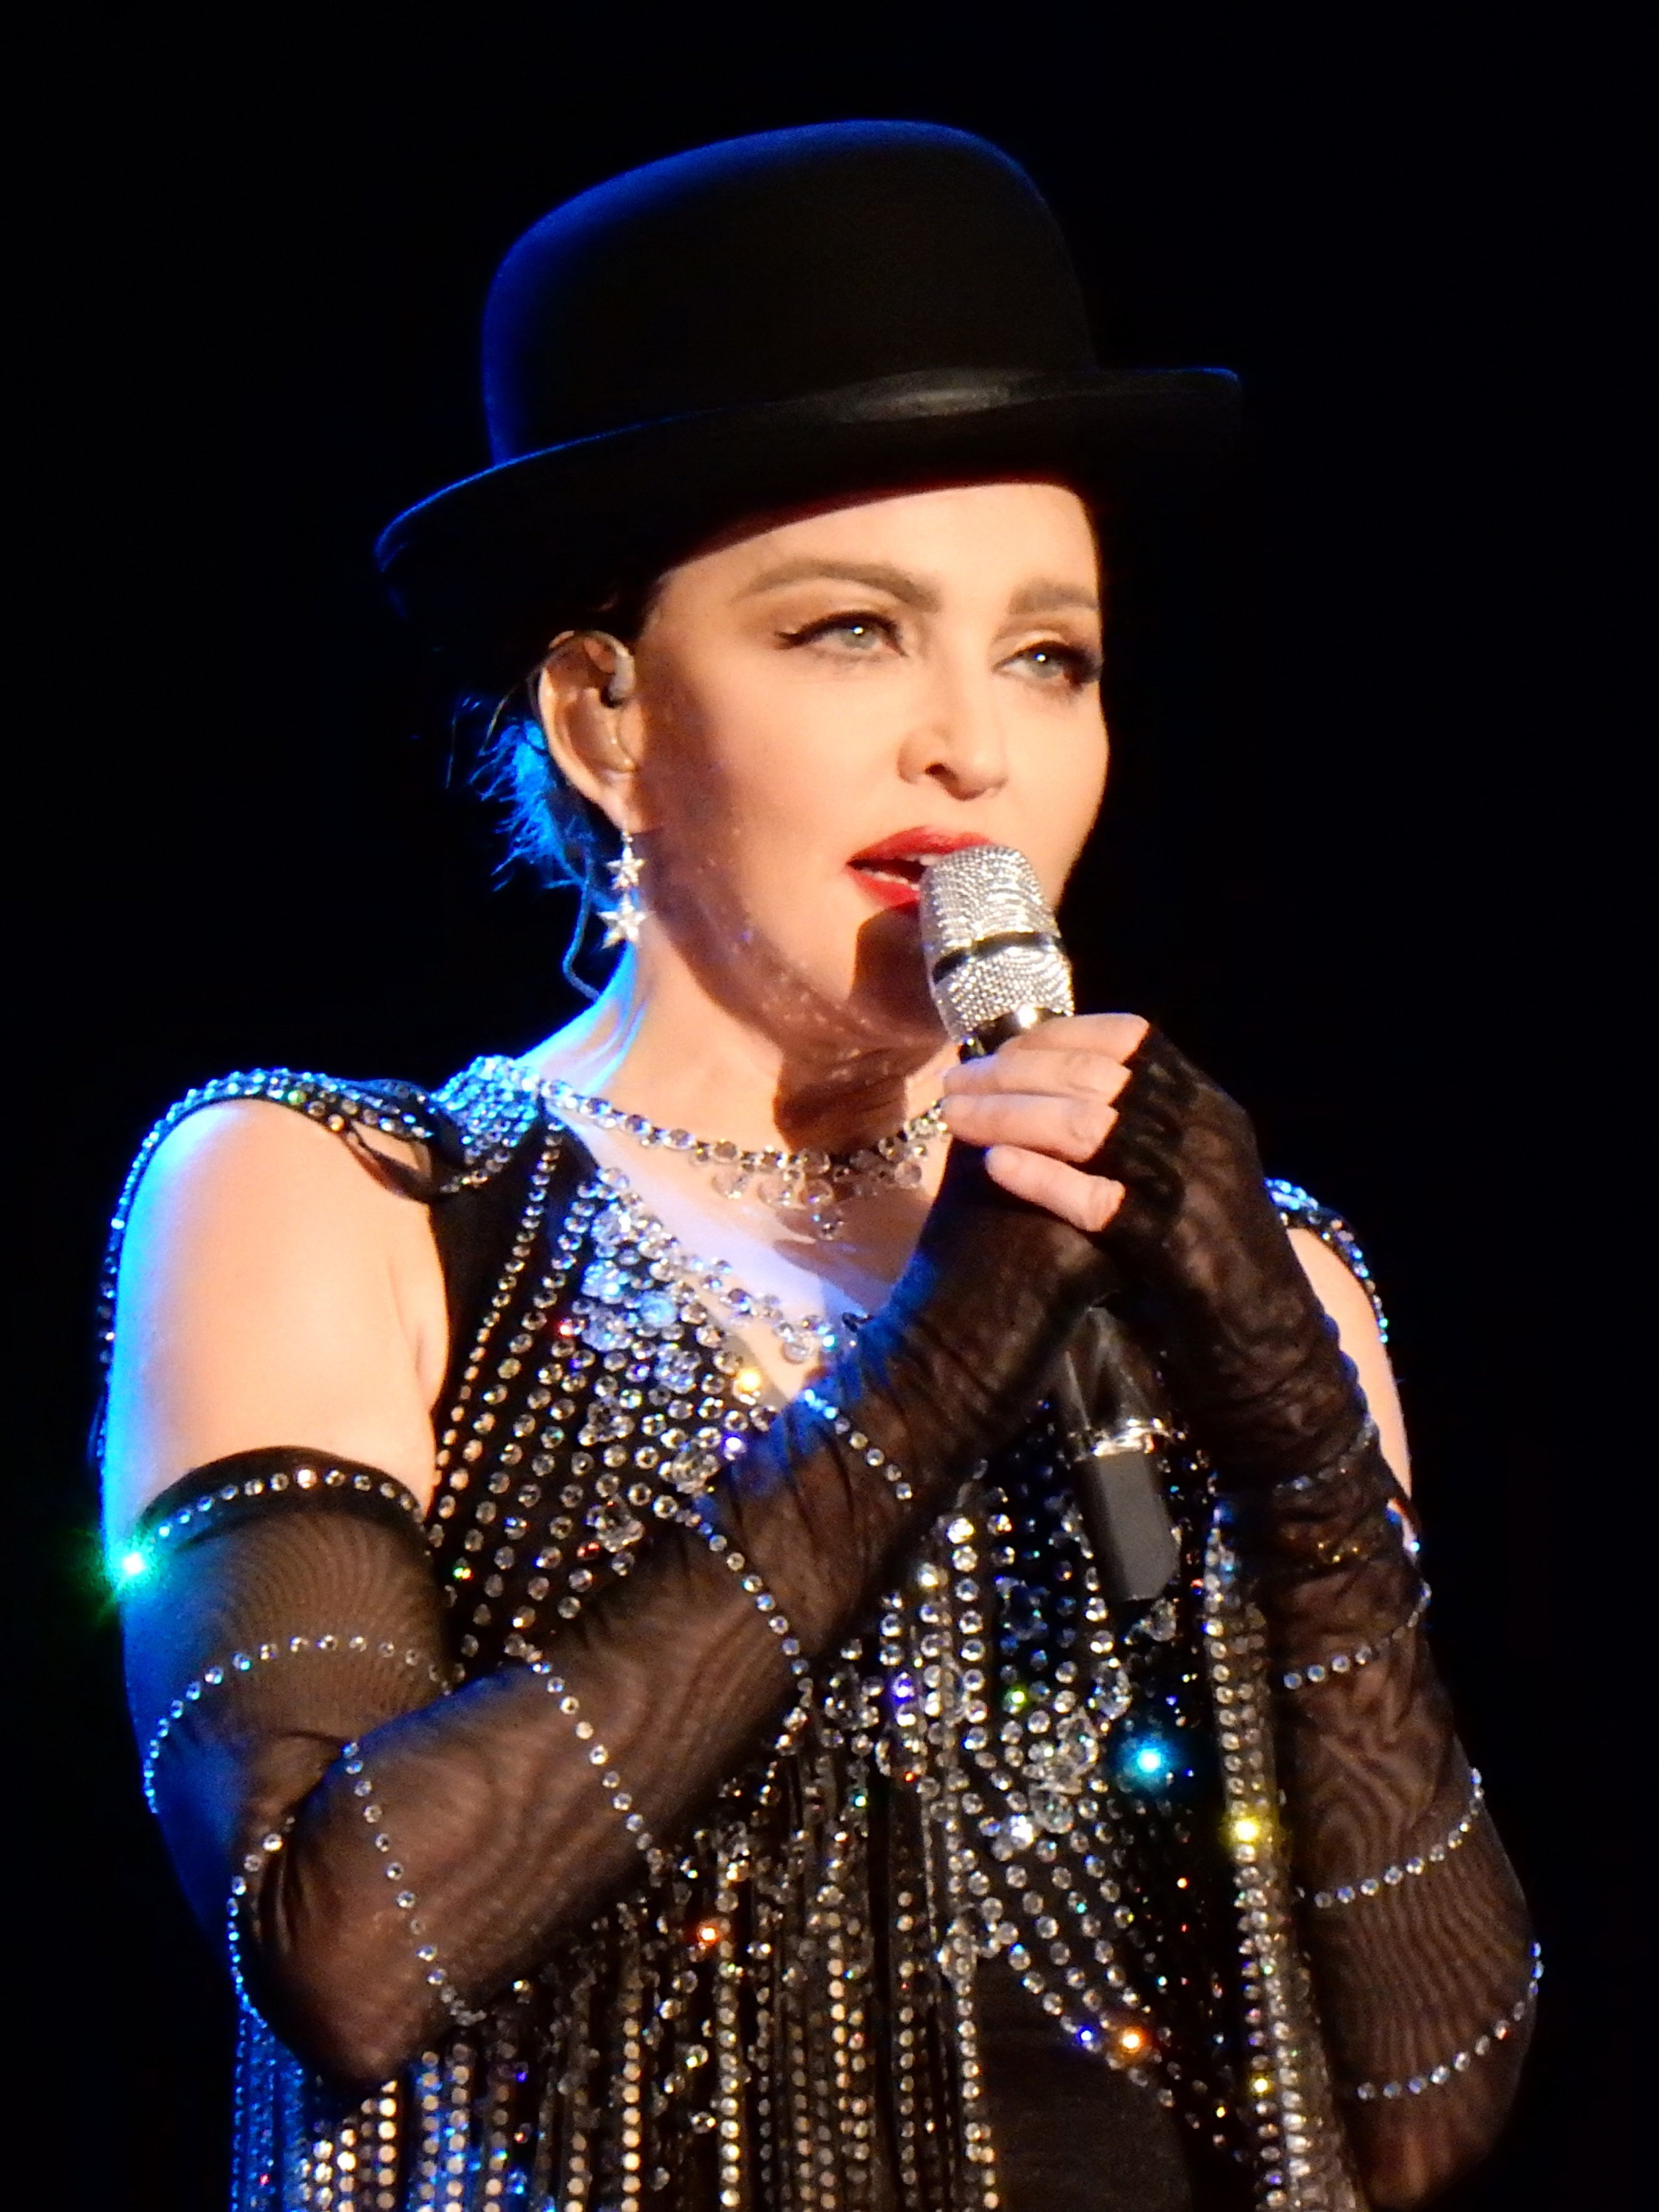 Madonna, my 9th cousin 3x removed